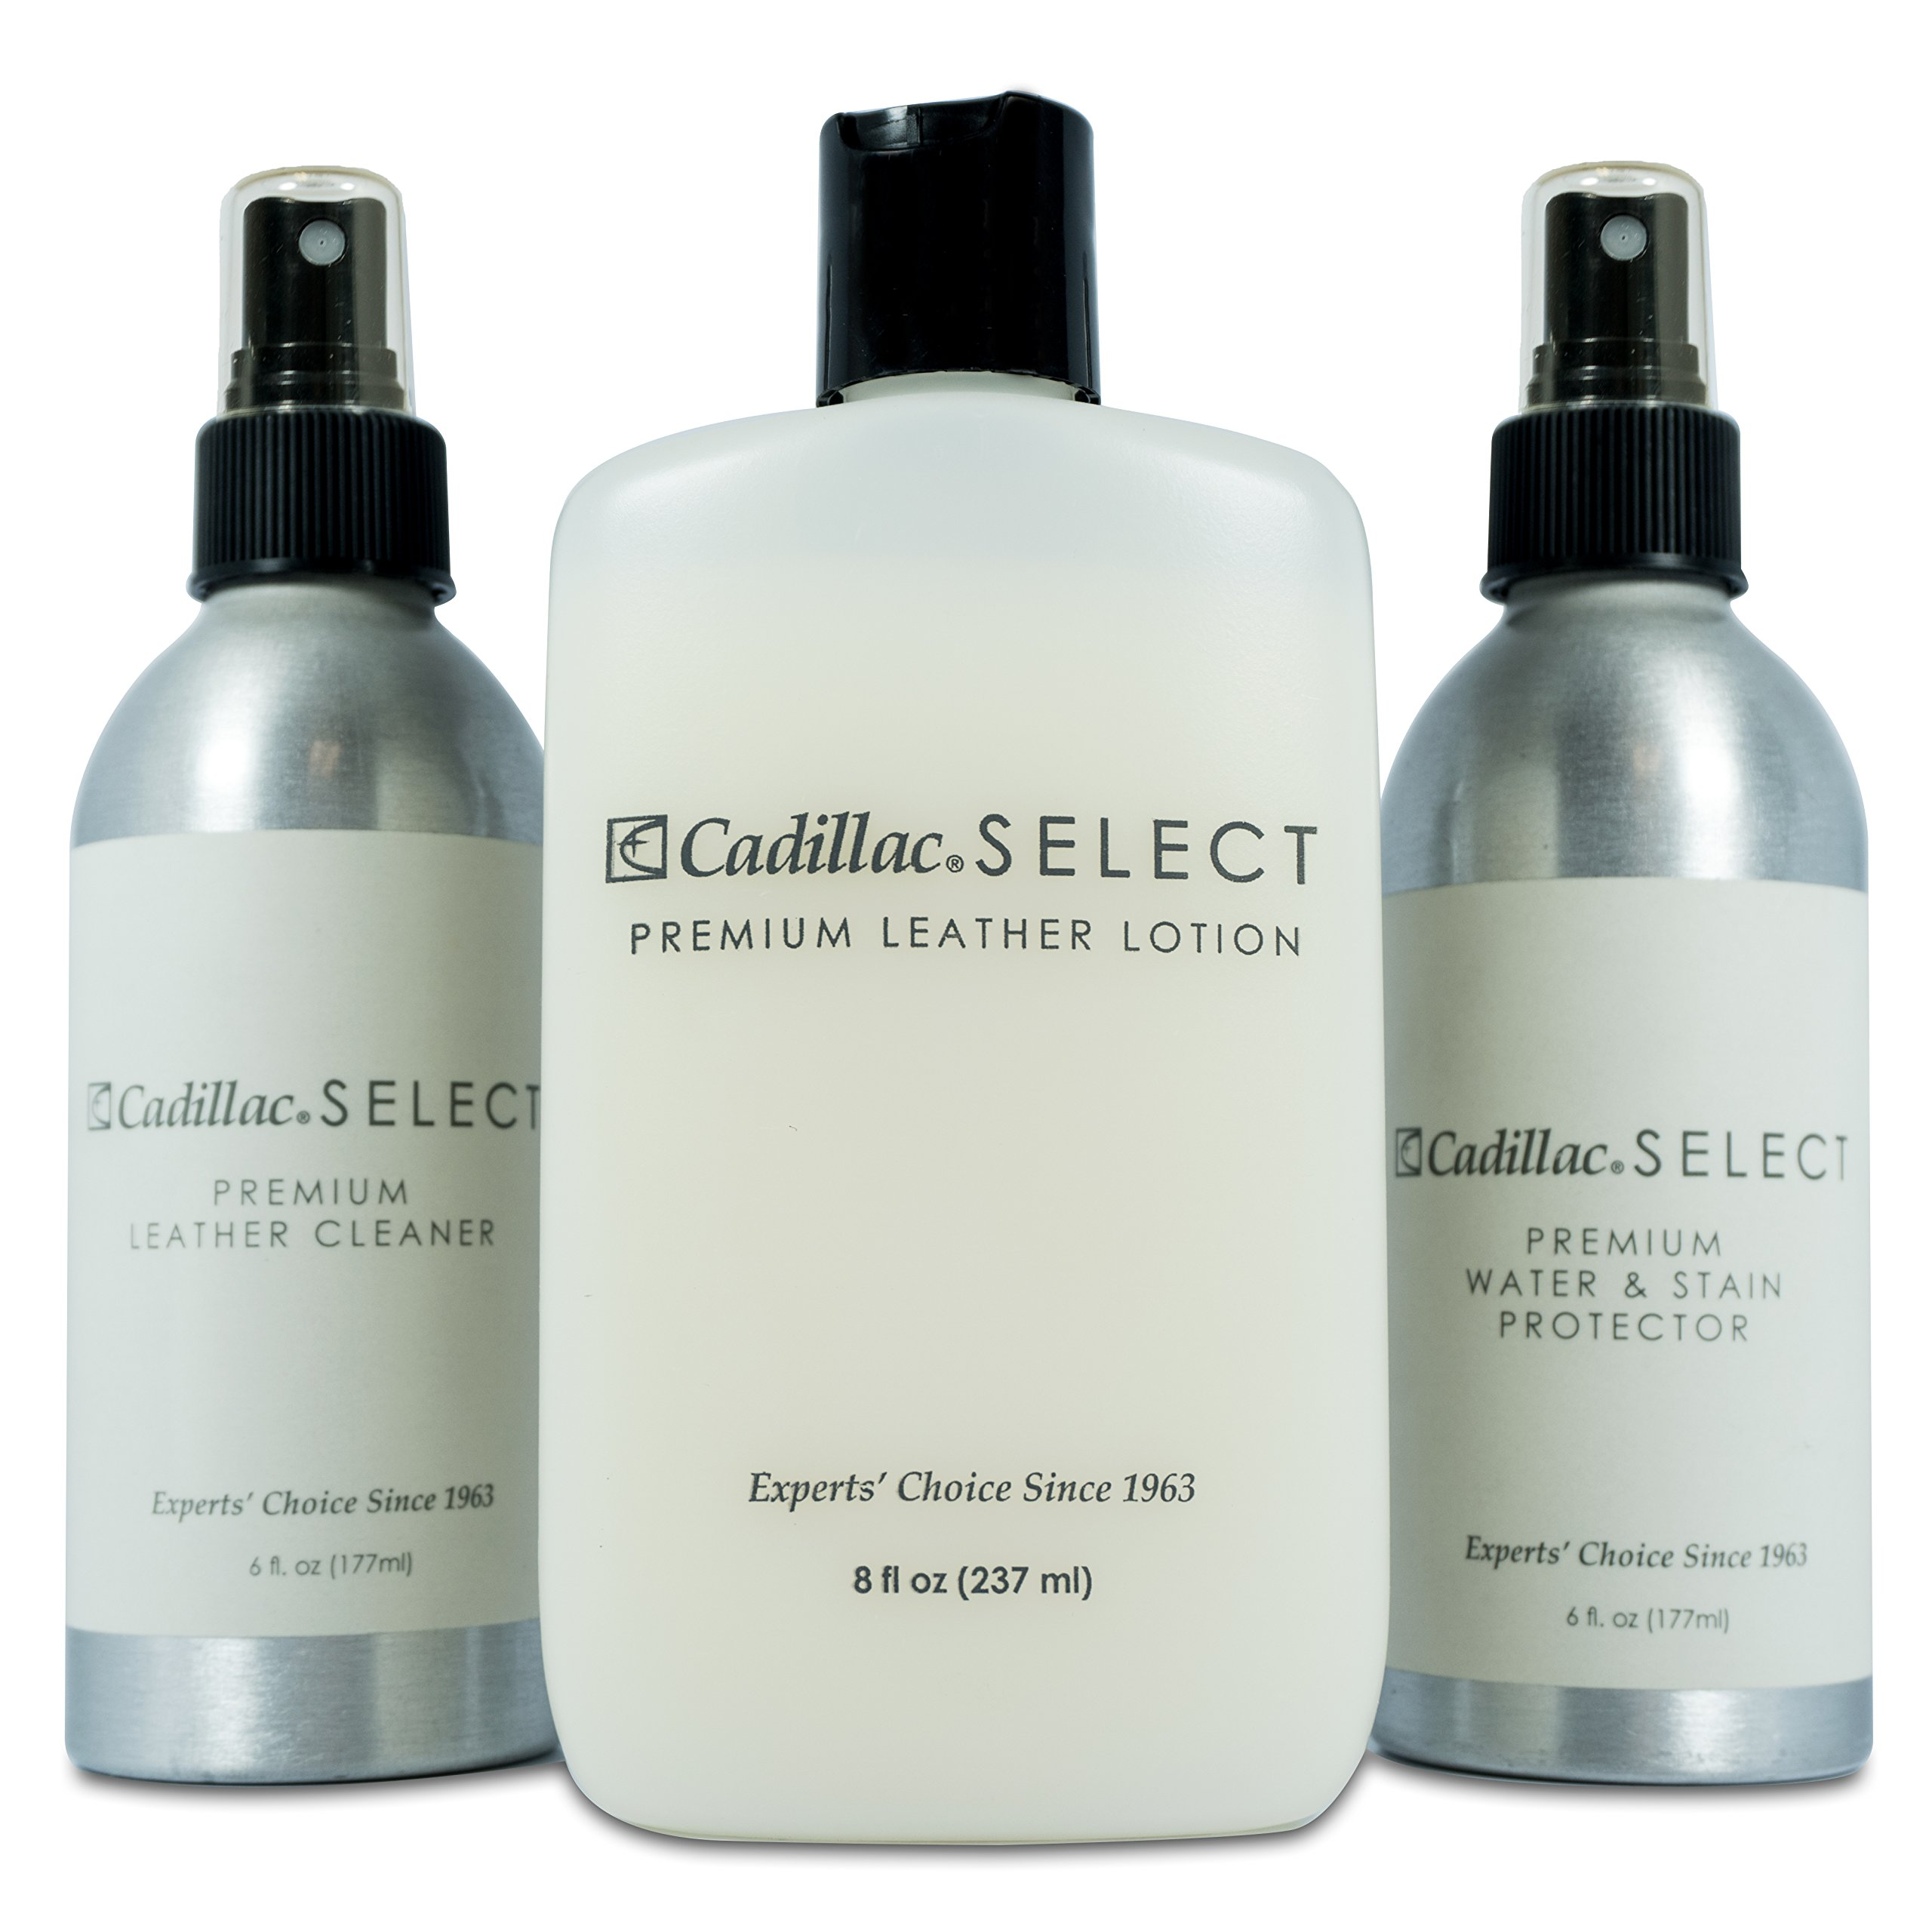 Cadillac Select Premium Leather Care Kit - Leather Cleaner, Lotion Conditioner & Water & Stain Protector